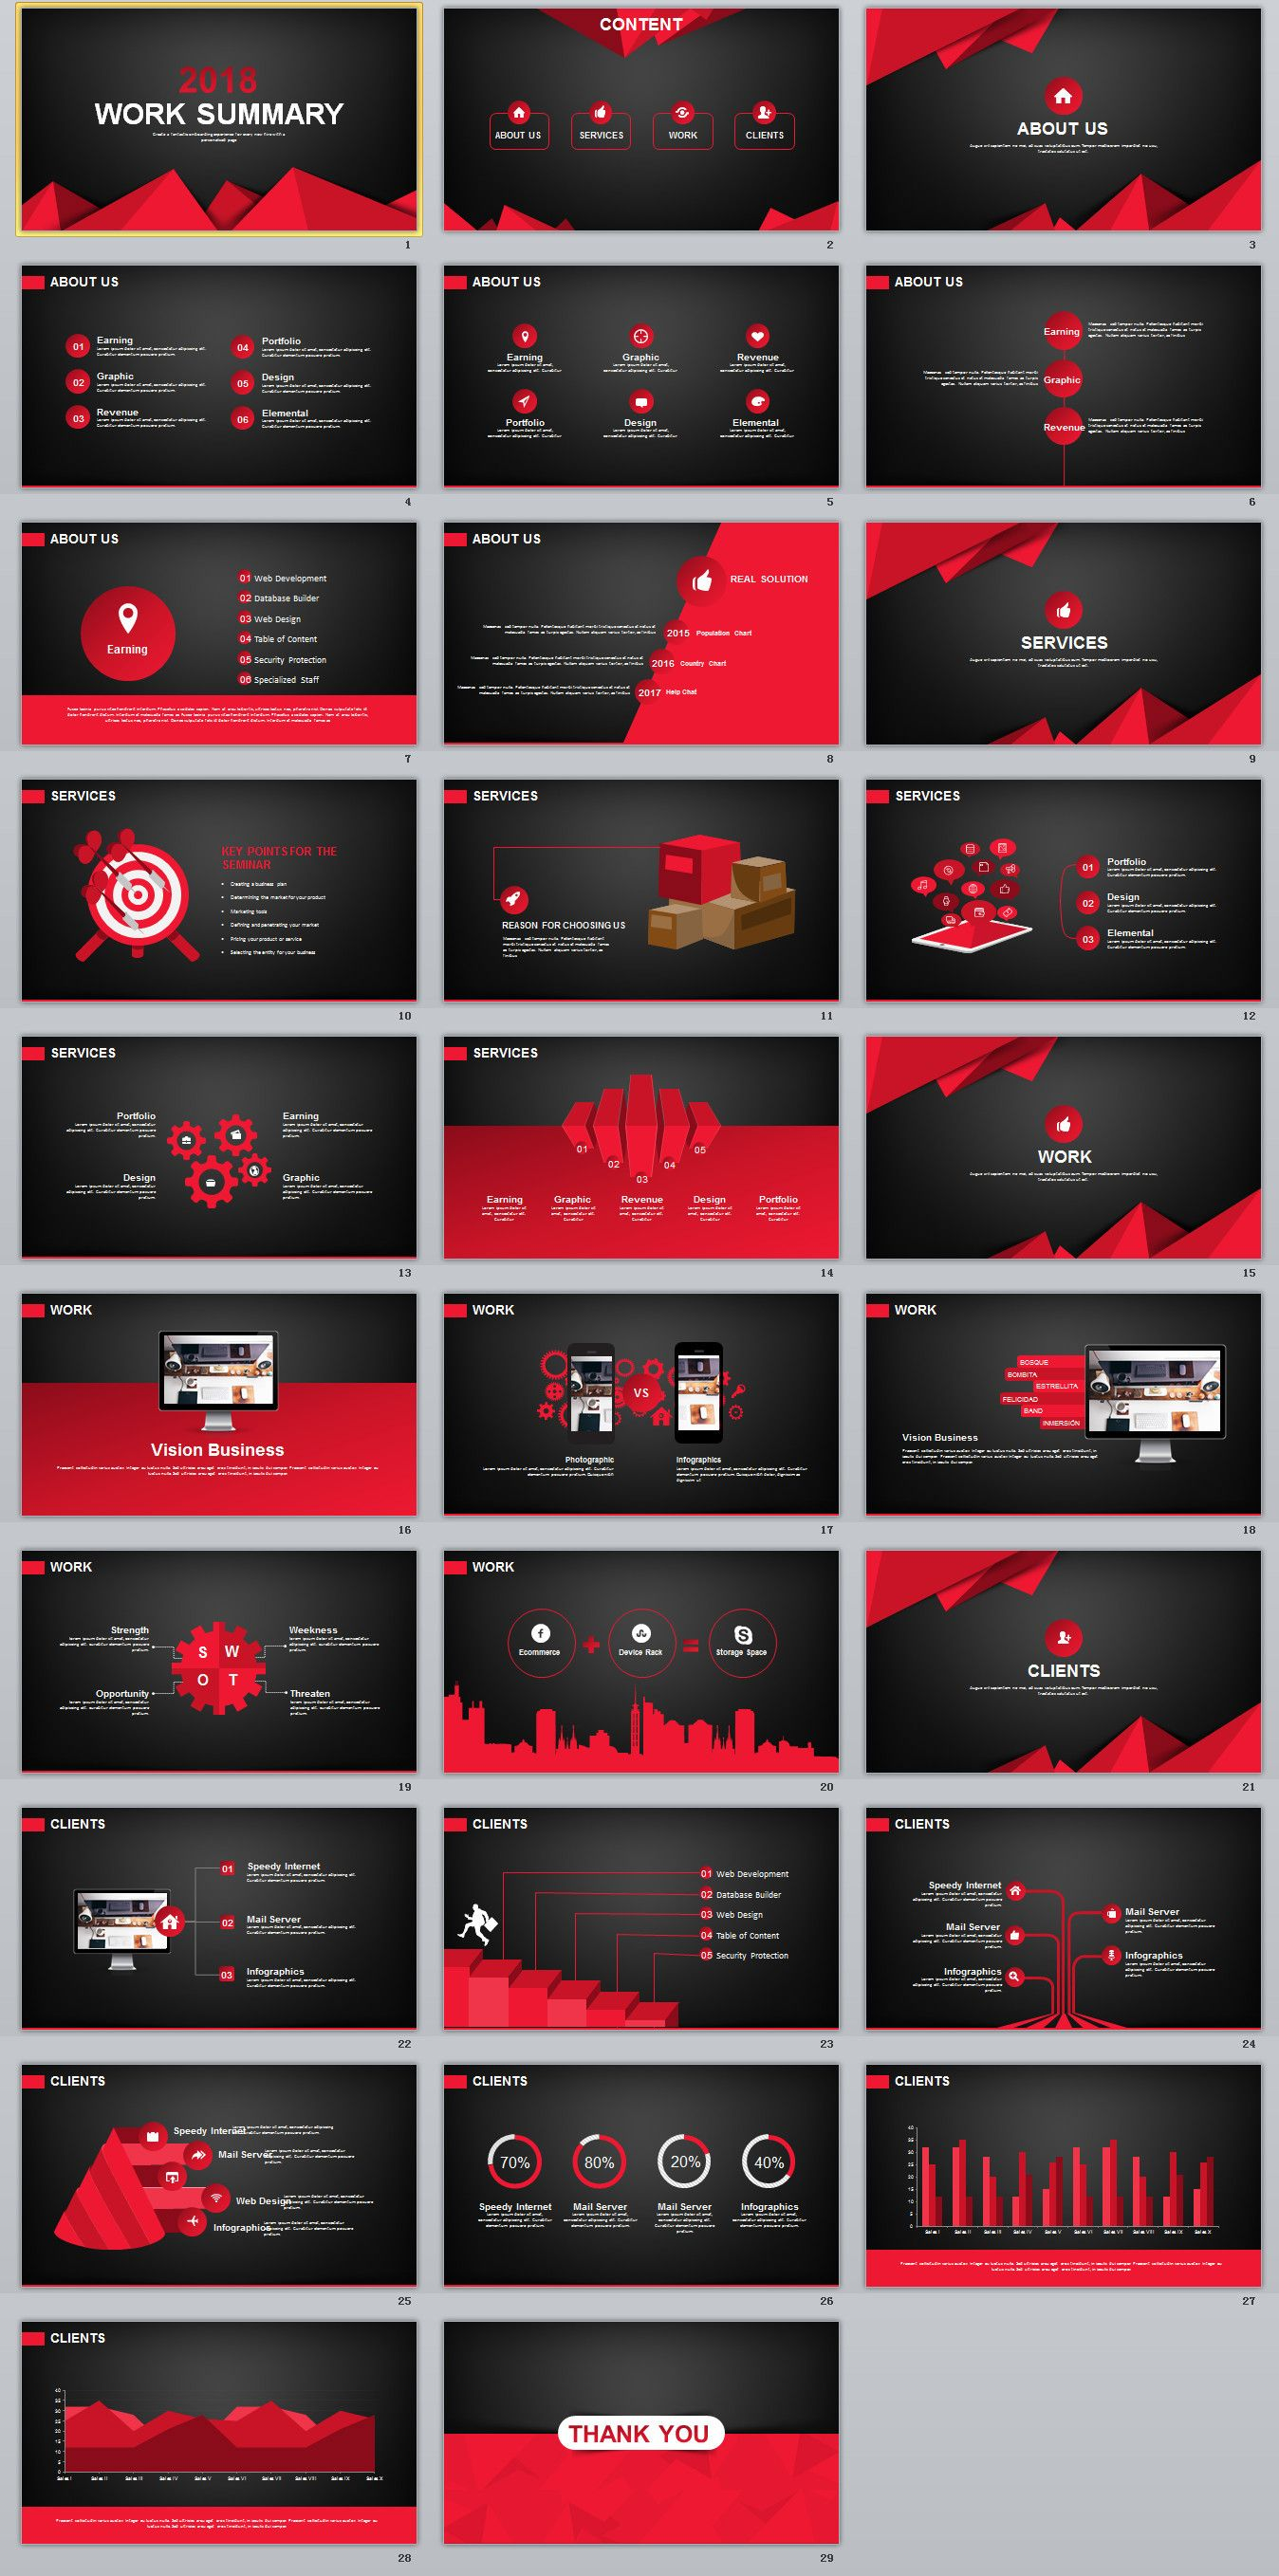 29 red black work summary powerpoint templates powerpoint 29 red black work summary powerpoint templates powerpoint templates presentation animation toneelgroepblik Images